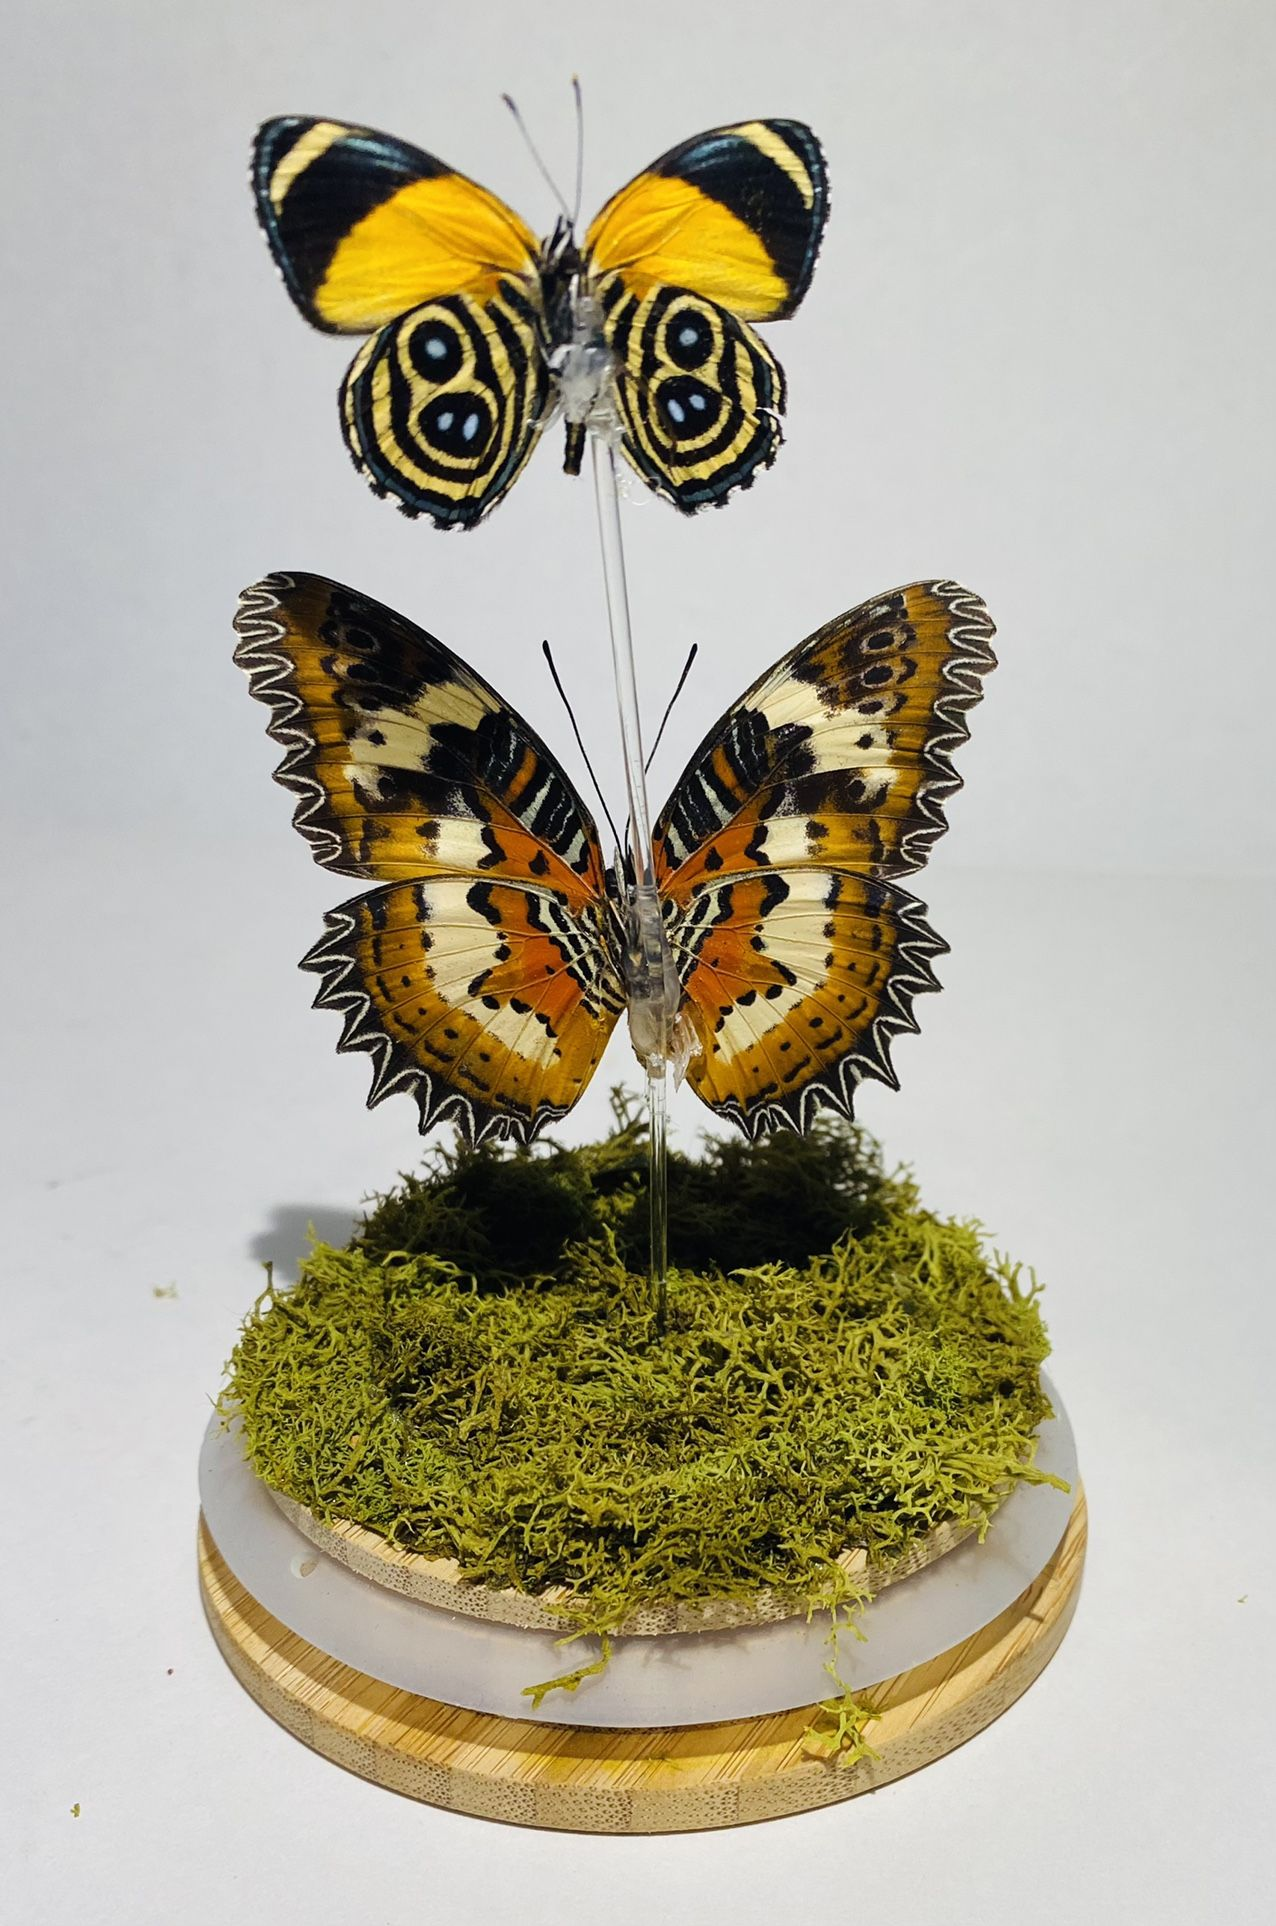 Two Real Butterflies Displayed in  Glass Jar, Taxidermy Art, Entomology, Oddities, Curiosities, Real Butterfly, Cottagecore, Butterfly Decor